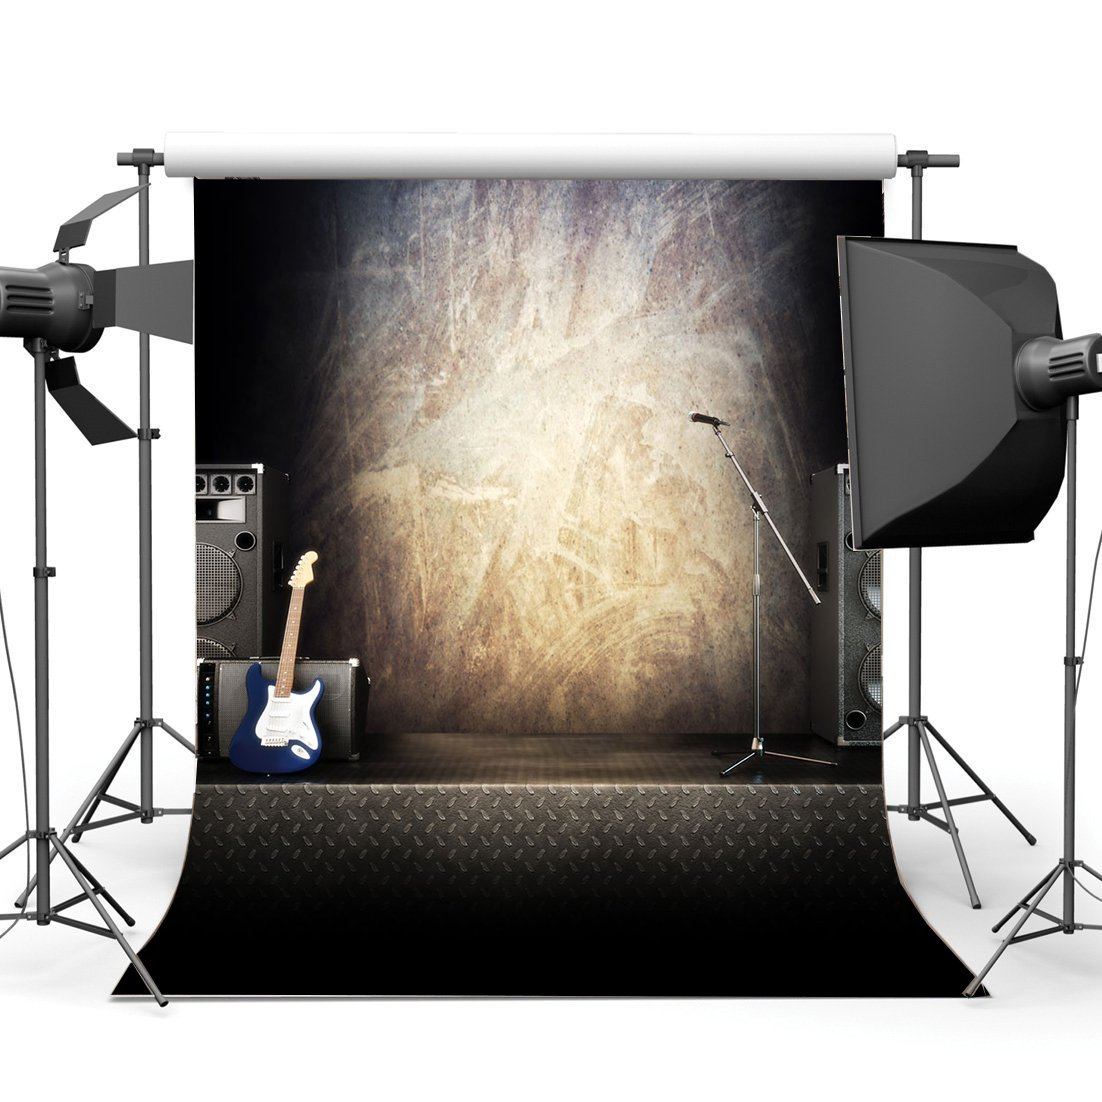 NiuXphoto School Band Concert Backdrop 5X7FT Rock Music Guiter Vinyl Backdrops Nostalgia Wood Plank Wooden Floor Photography Background for 80s 90s Hip Hop Style Party Photo Studio Props LL172